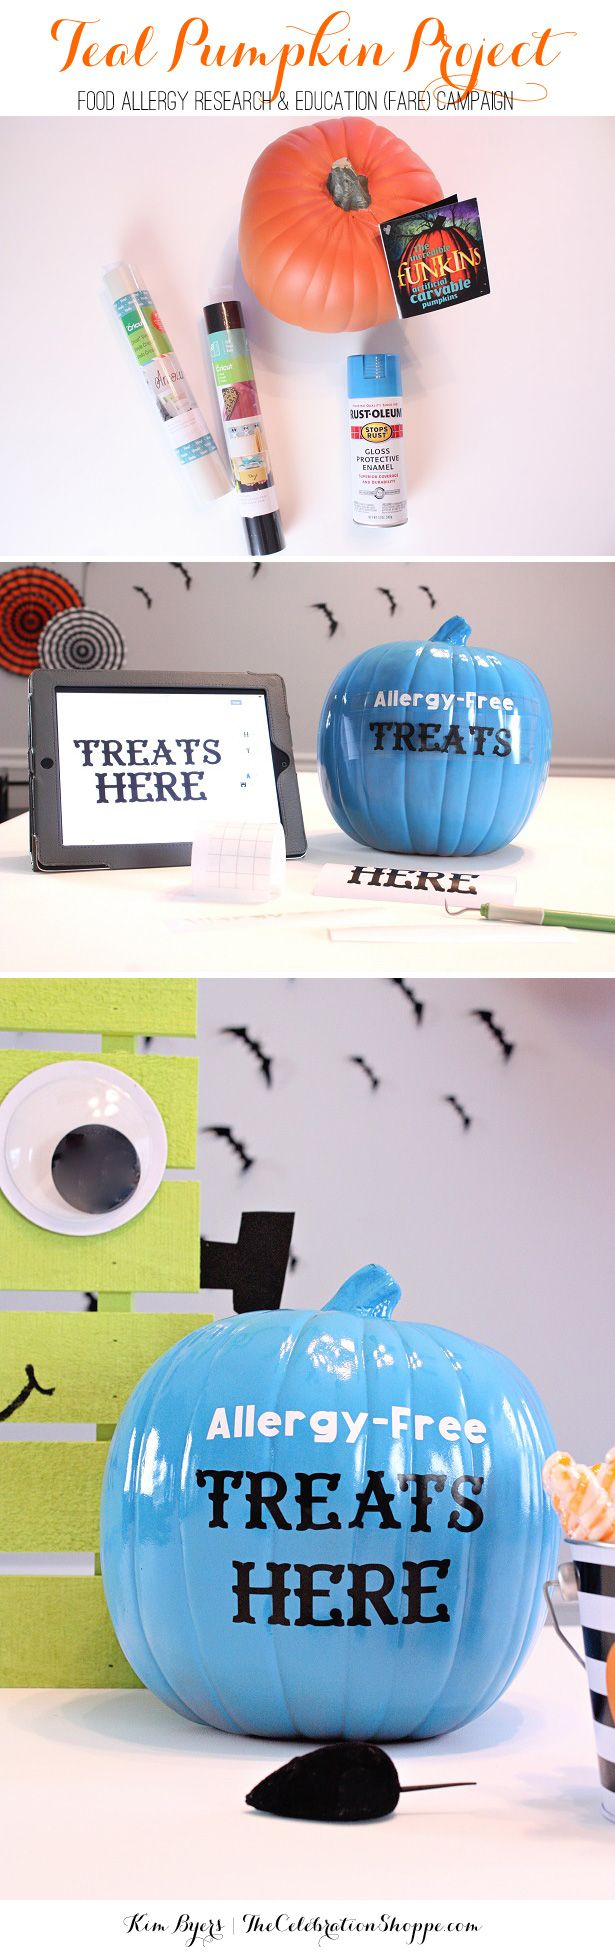 Decorate A Teal Pumpkin | Kim Byers - Halloween Teal Pumpkin Project - Include Kids with Food Allergies!